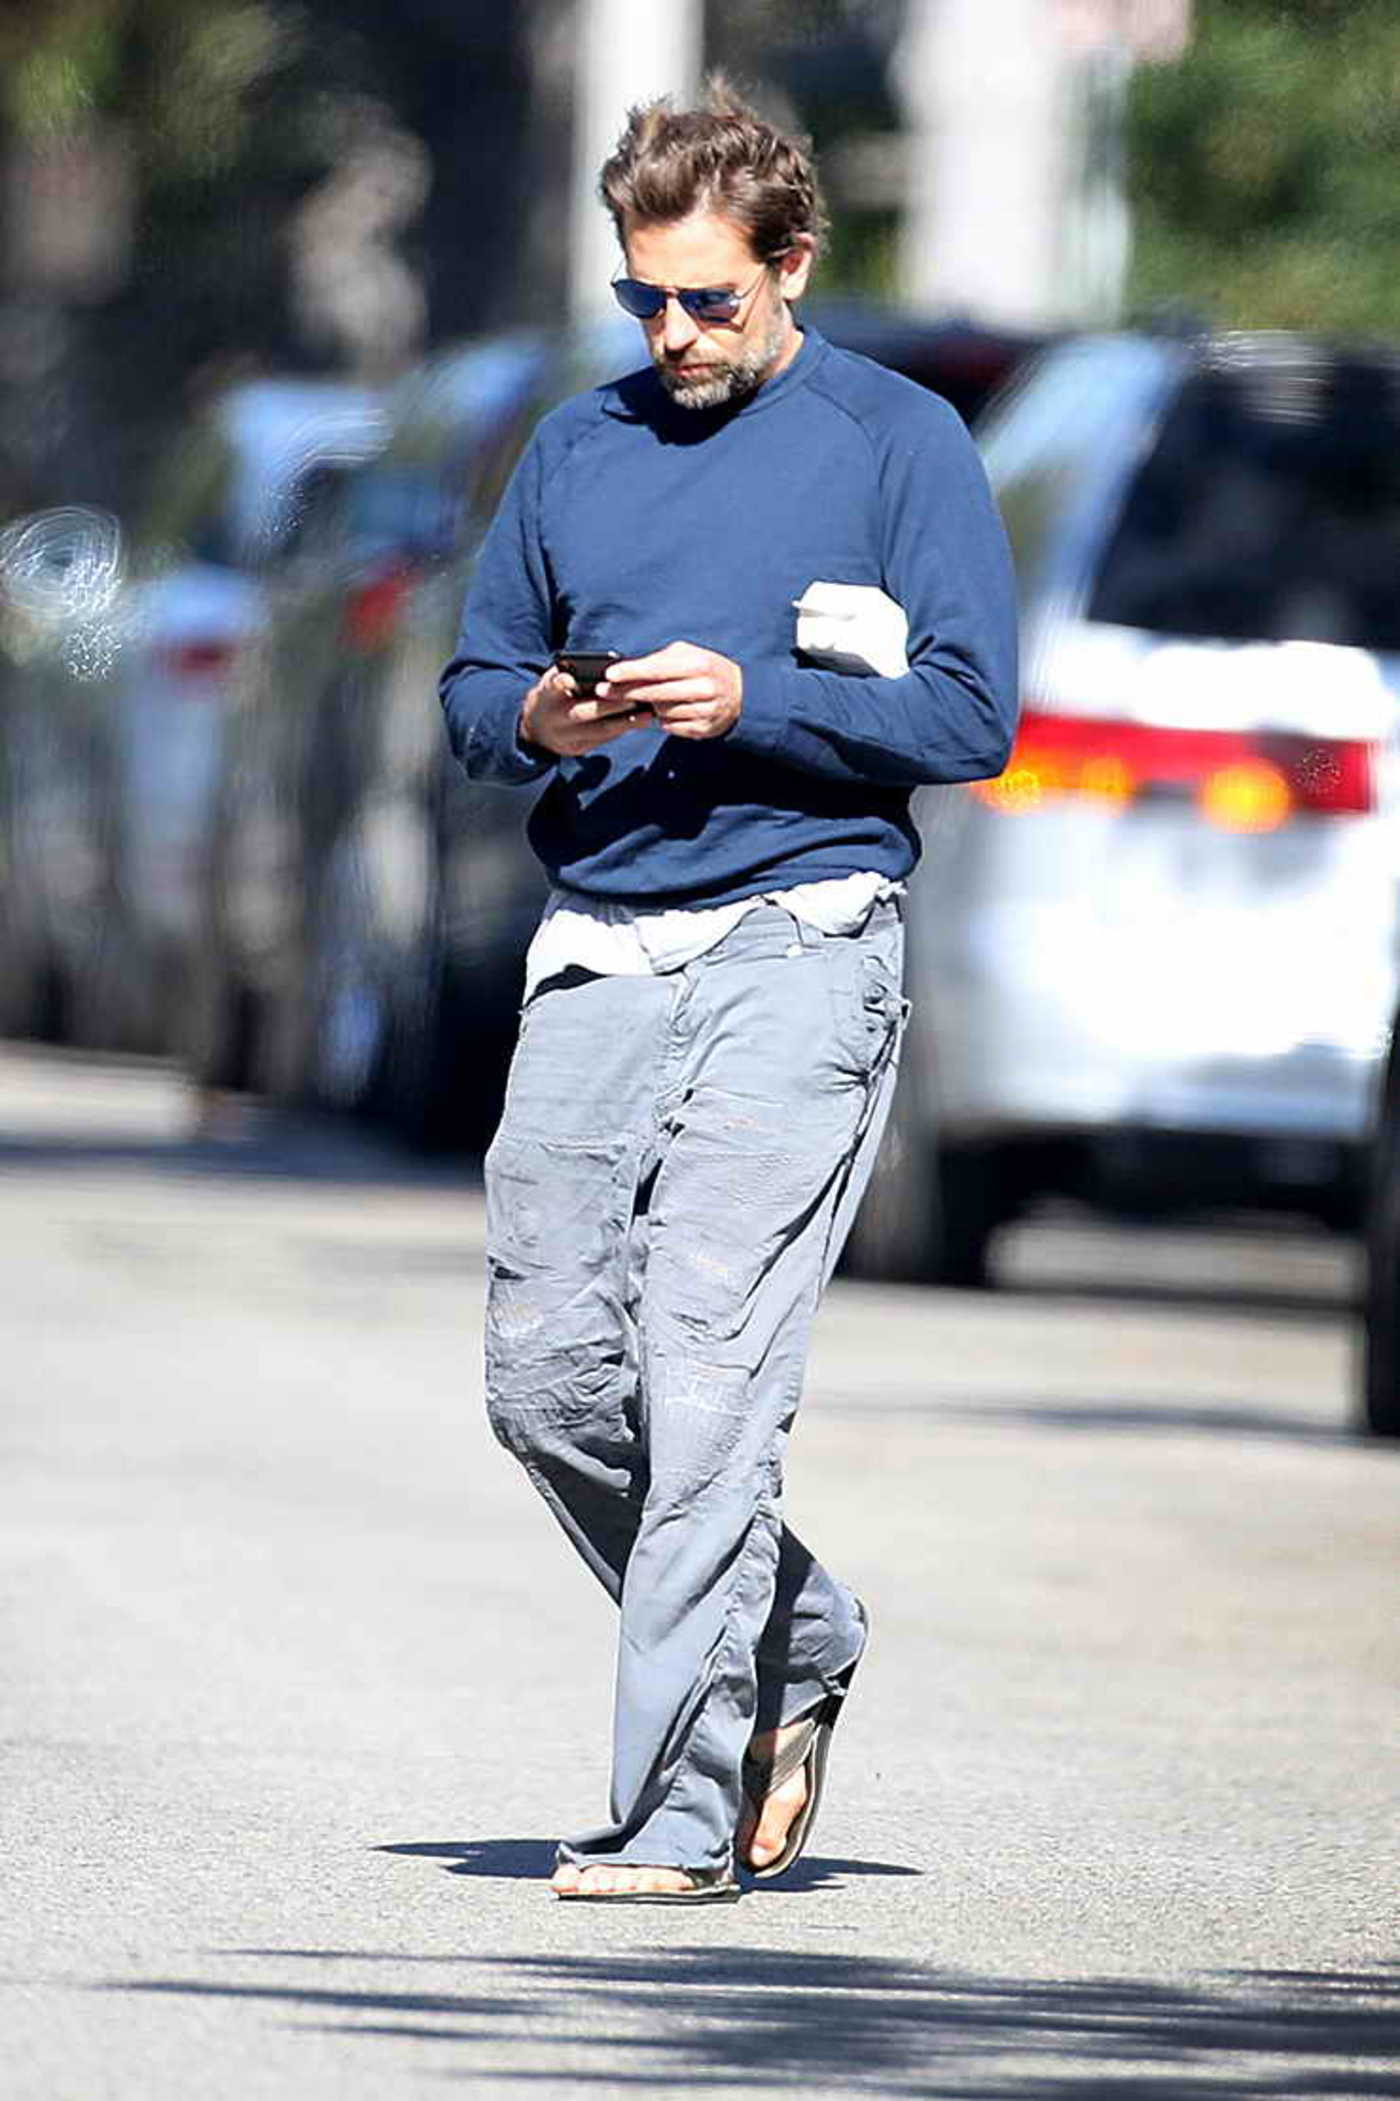 Bradley Cooper in a Blue Long Sleeves T-Shirt Was Seen Out in Los Angeles 02/25/2019